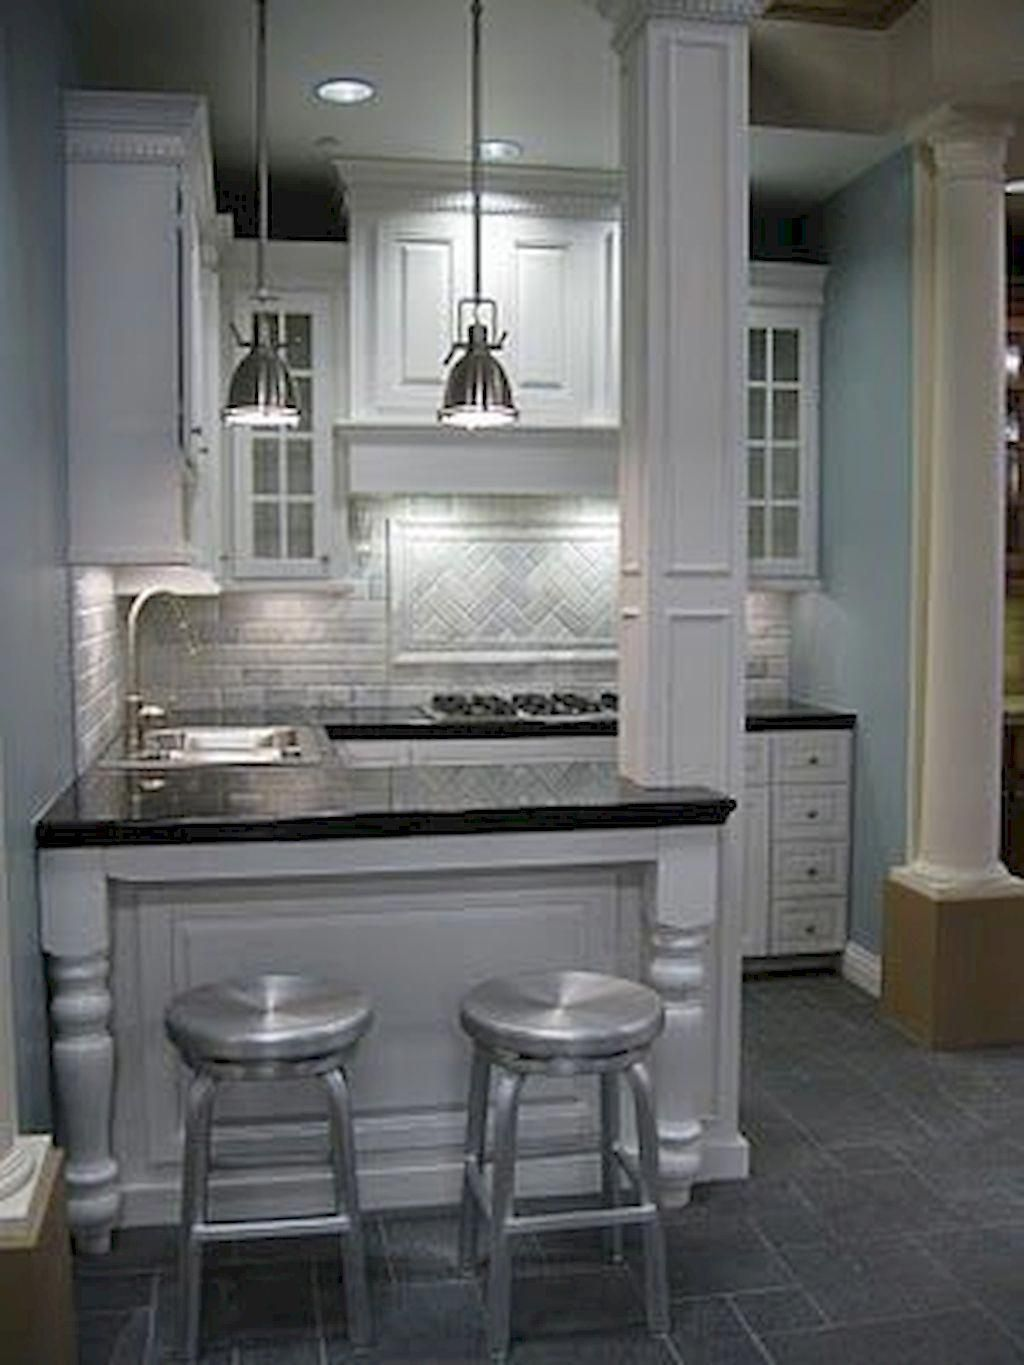 10 Styles Perfect for Your Tiny Cooking area